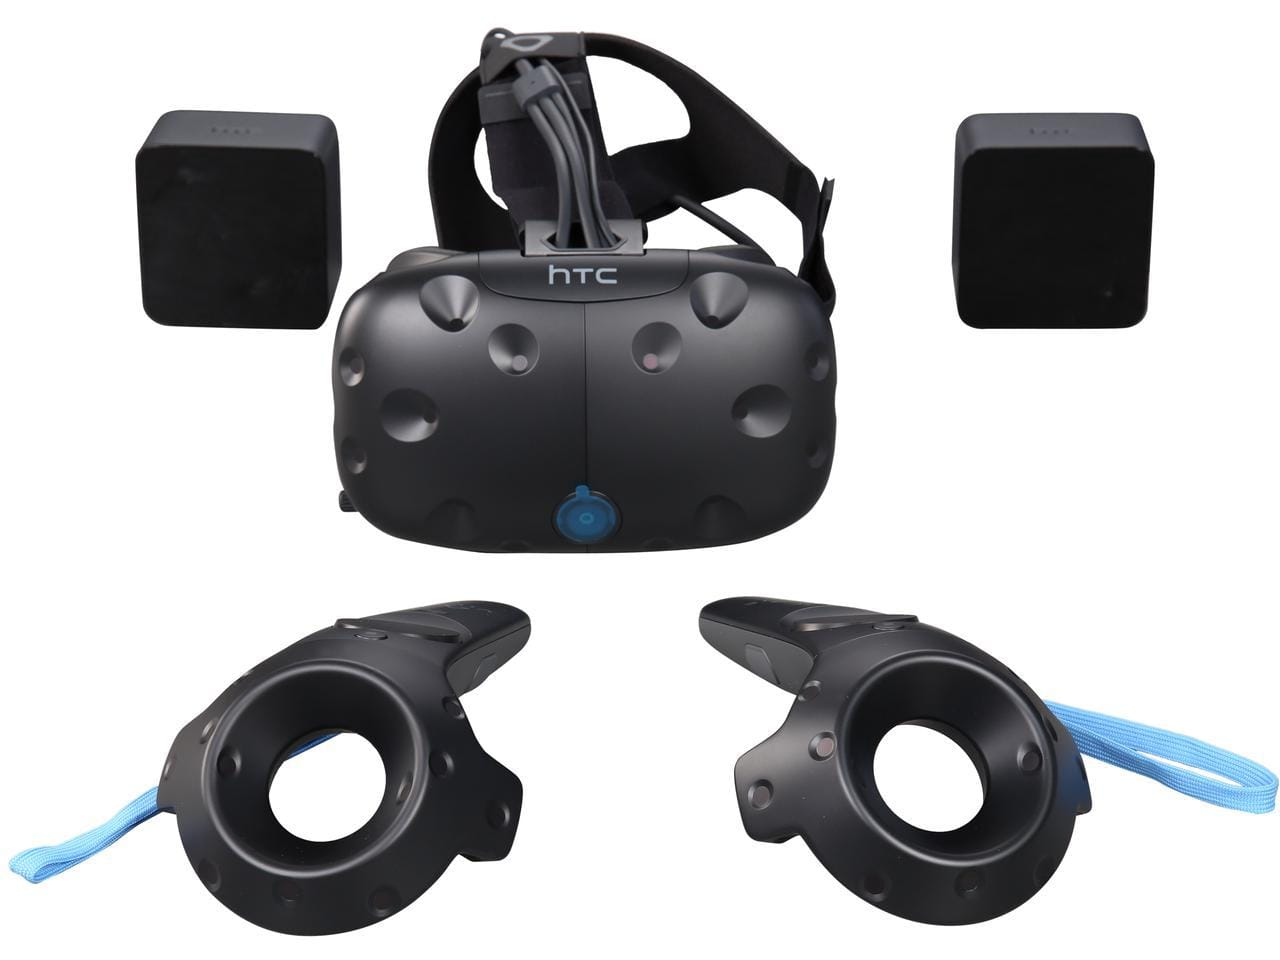 HTC VIVE Virtual Reality System $574 + Free Shipping w/ MasterPass Checkout via Newegg